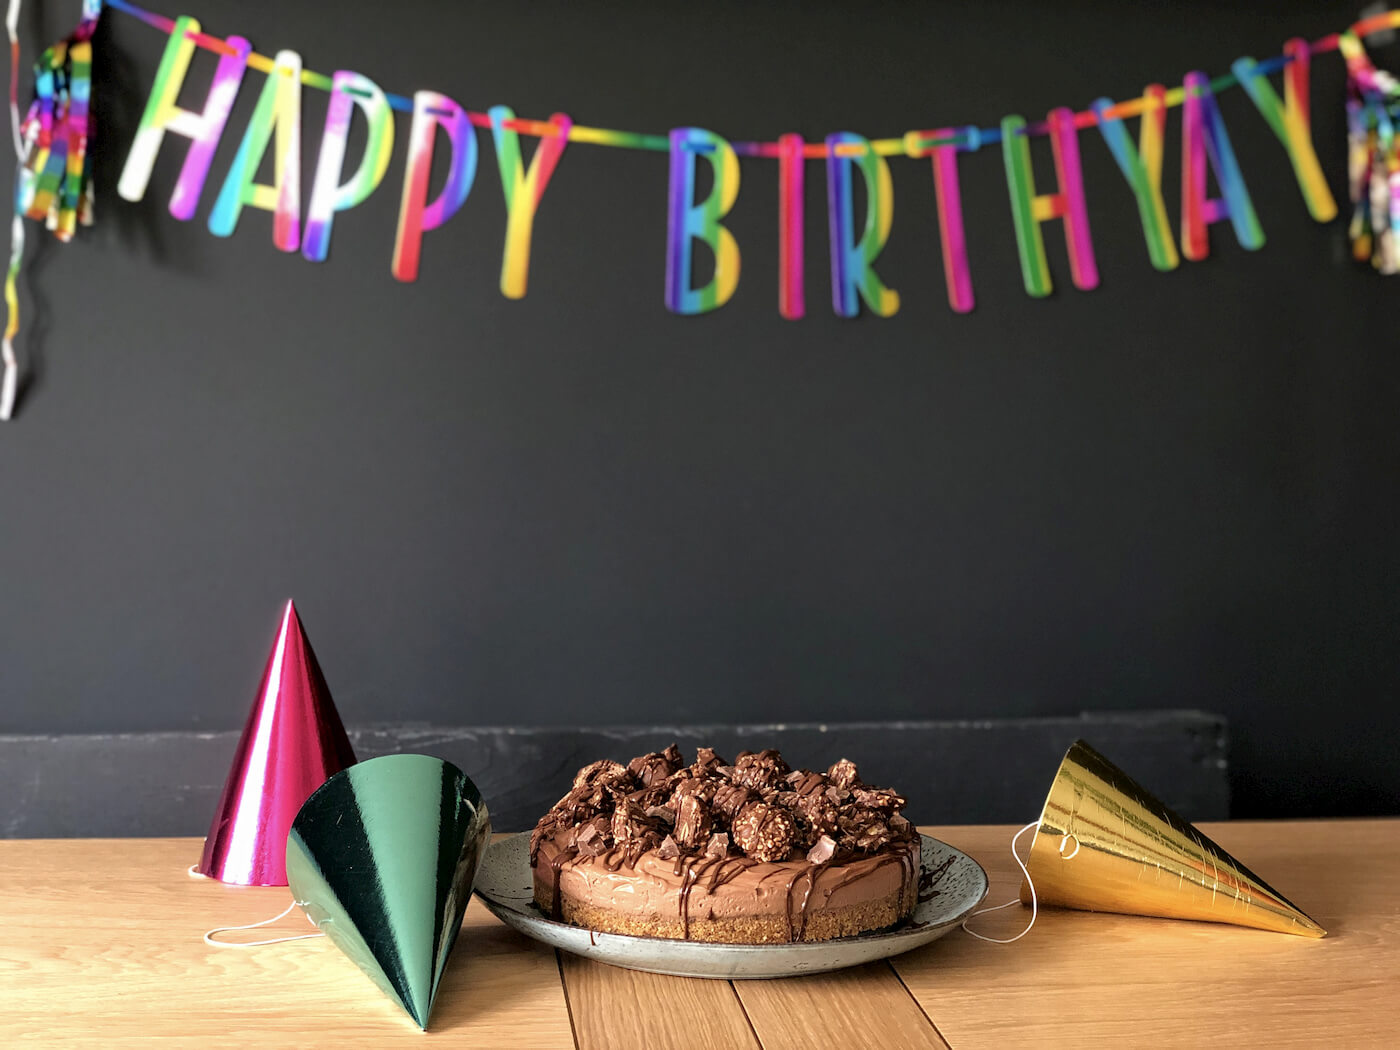 Chocolate cake on a table